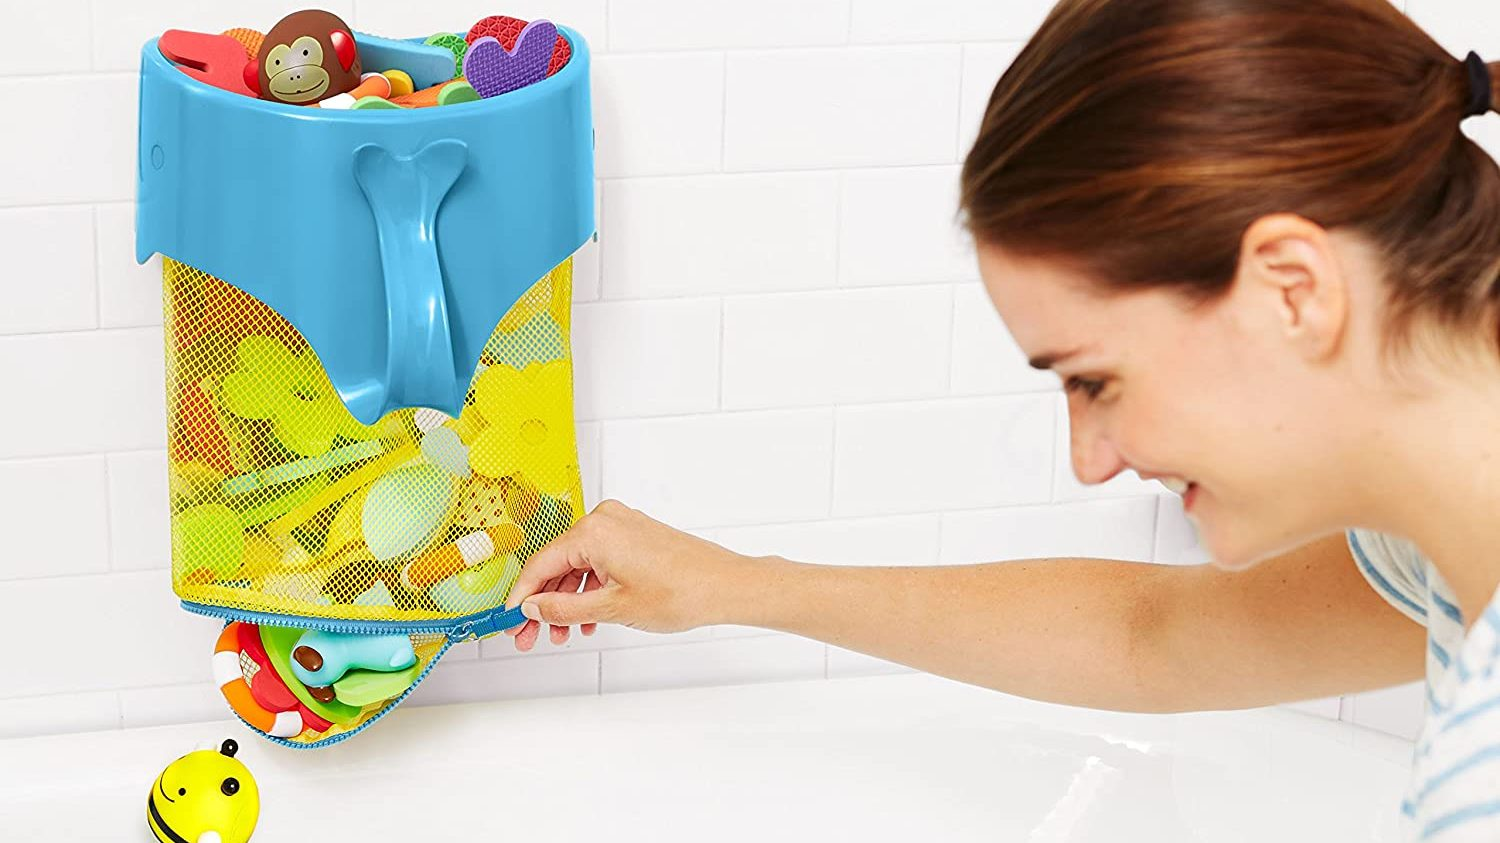 Best for Gathering and Emptying Toys